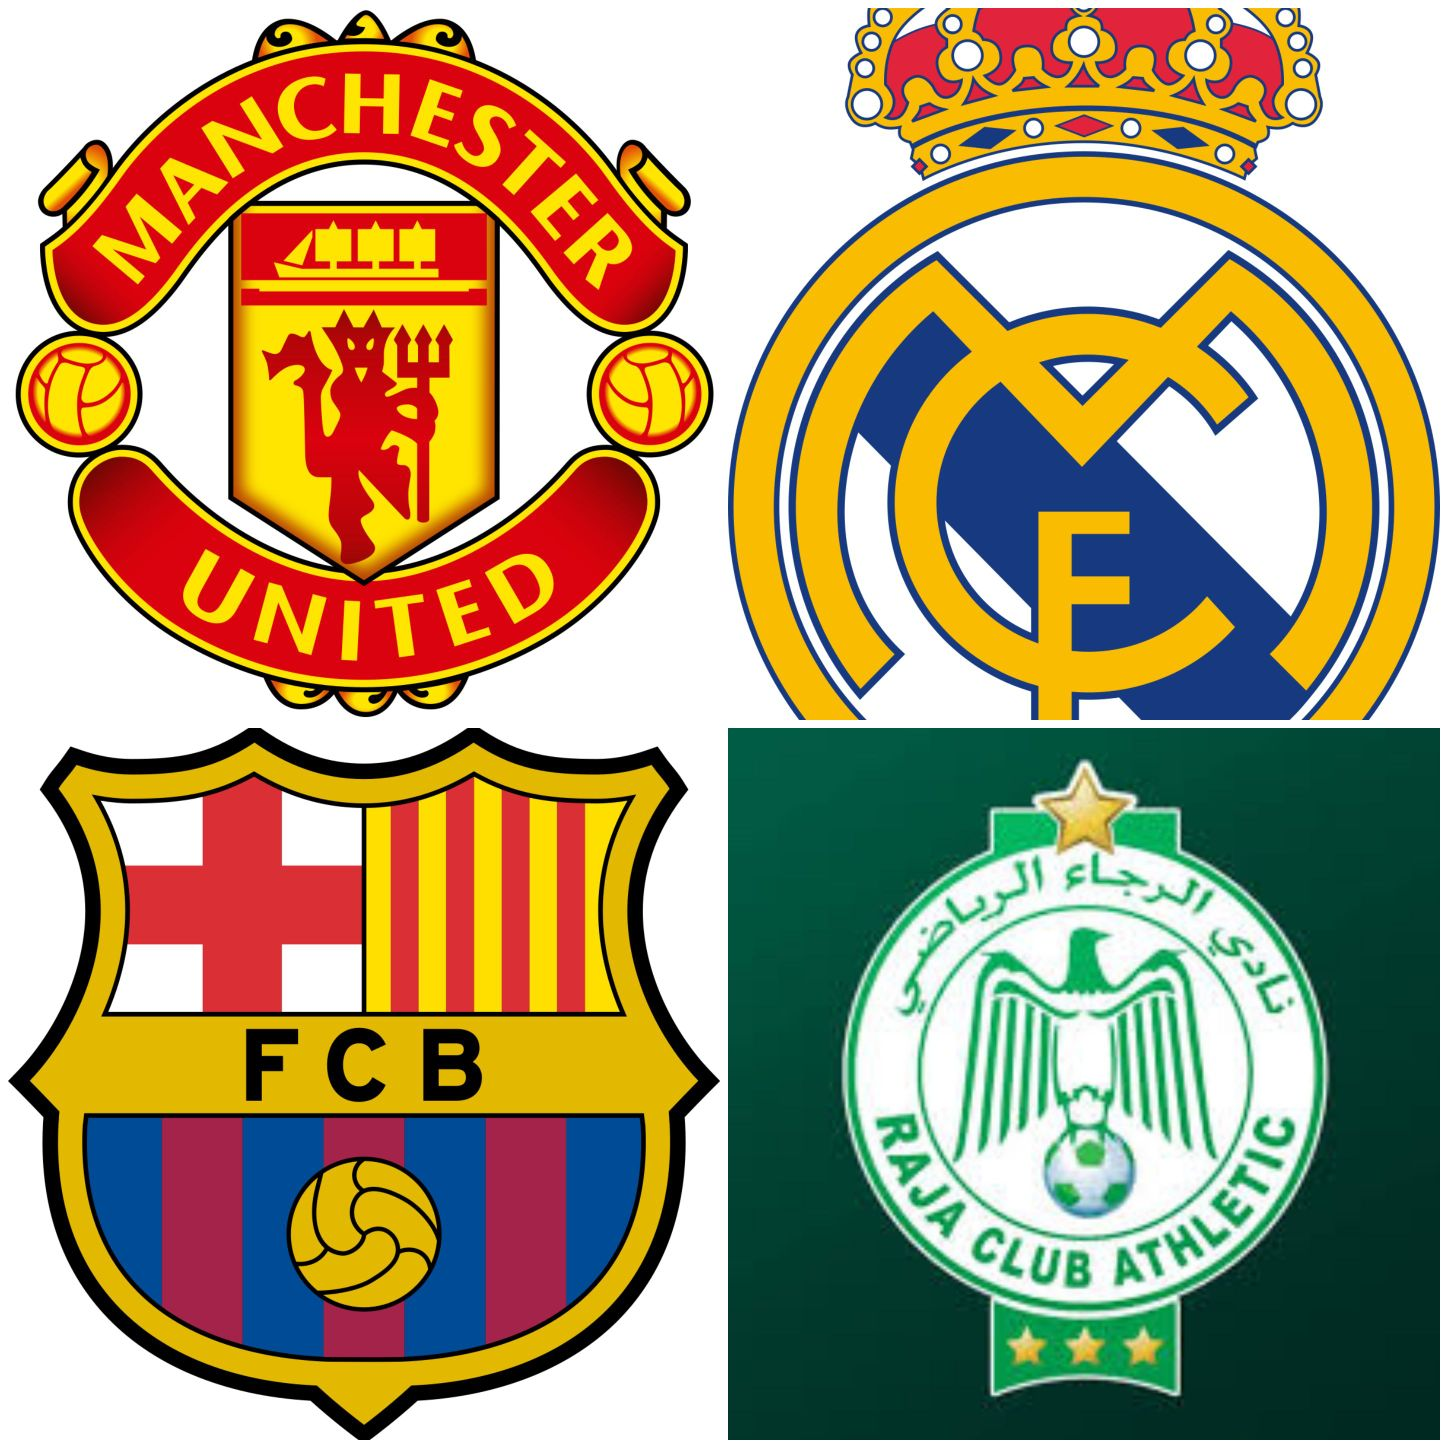 Football Clubs Who Have Won the Most Trophies